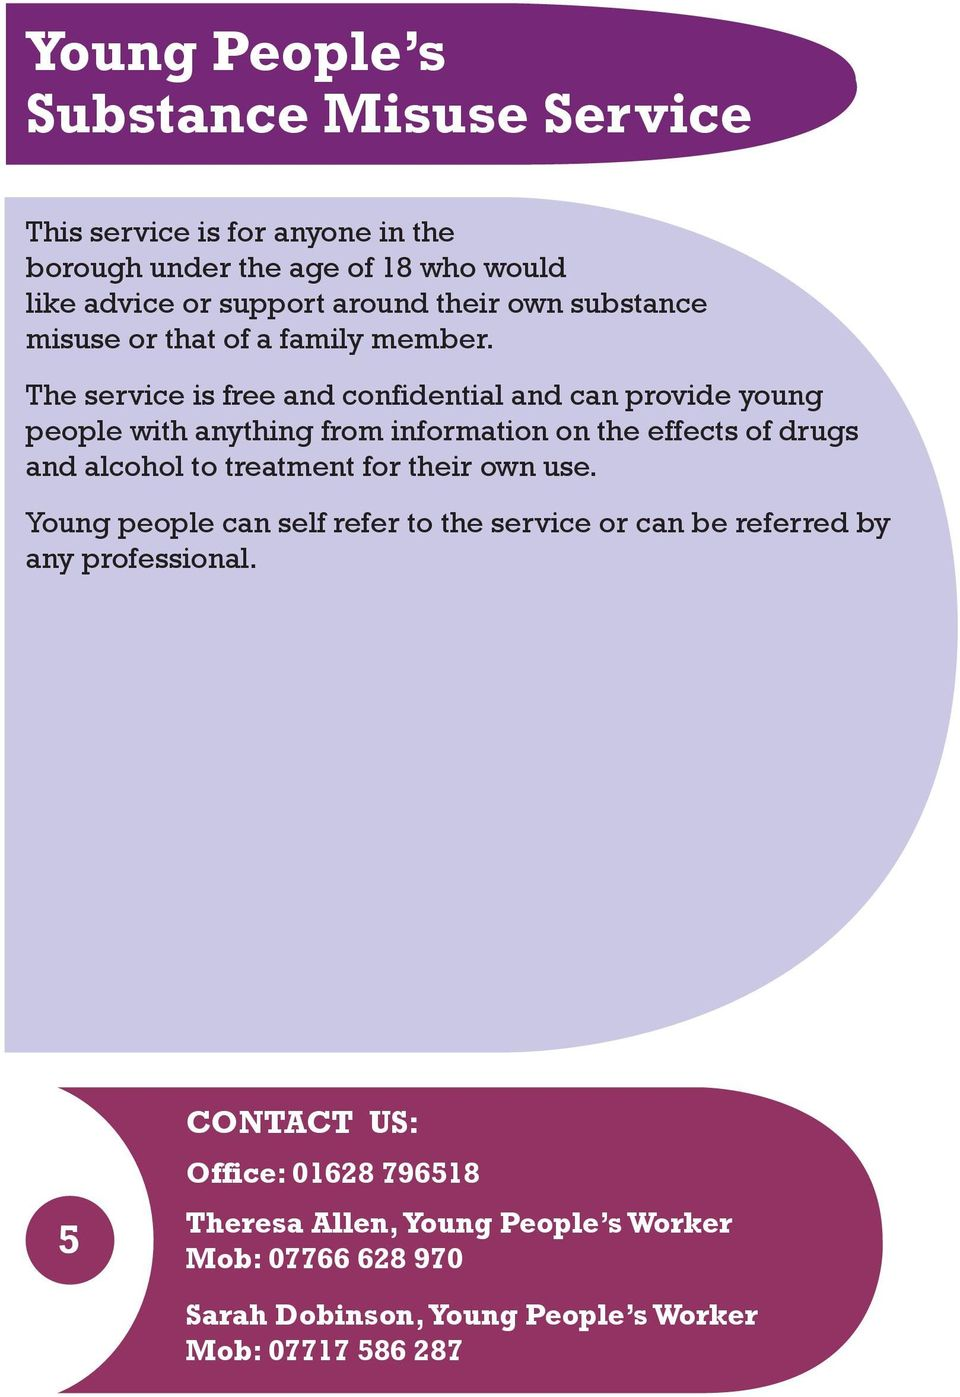 The service is free and confidential and can provide young people with anything from information on the effects of drugs and alcohol to treatment